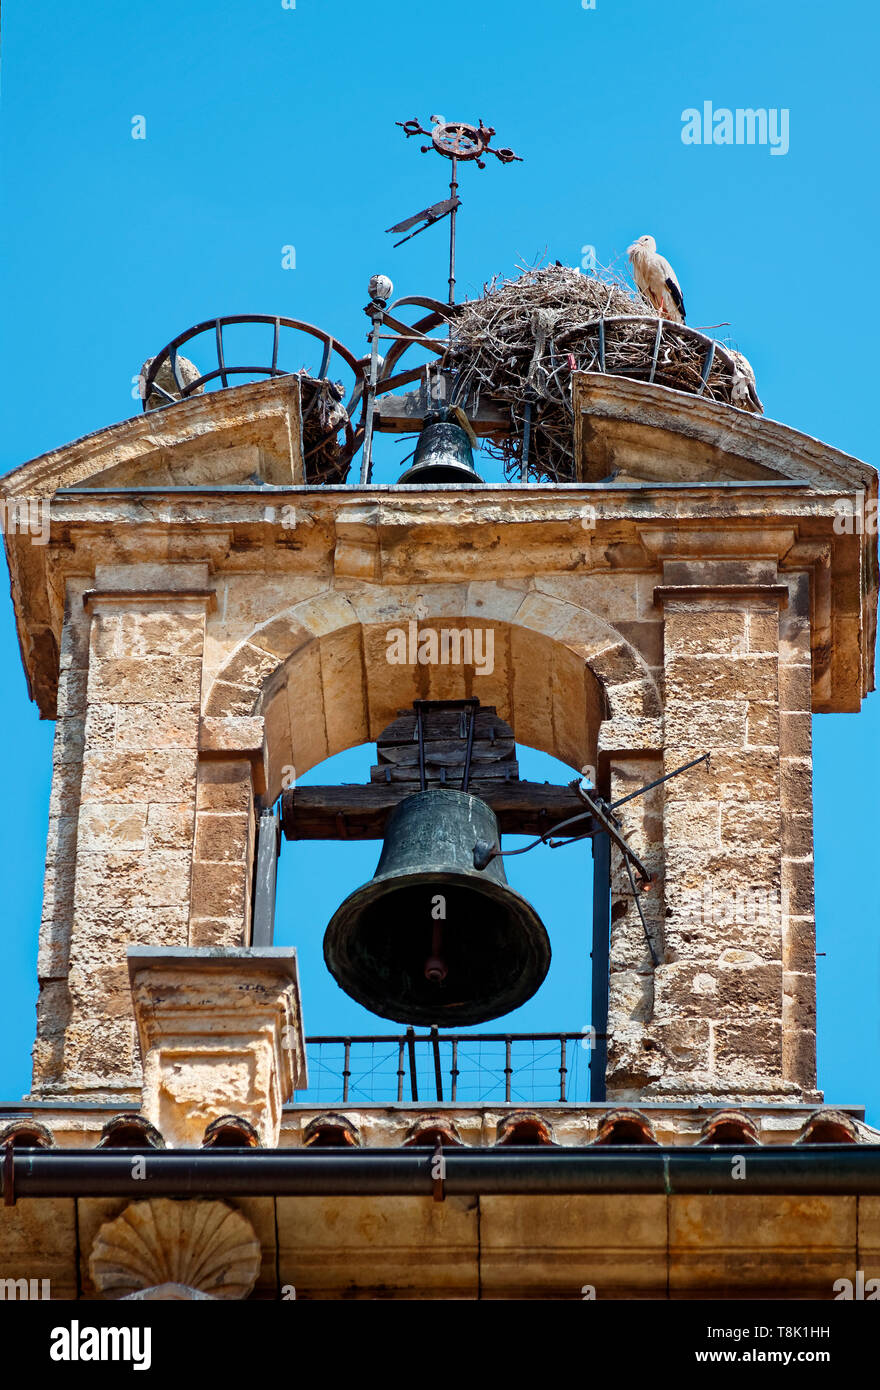 bells, old stone tower; 2 birds' nests, wildlife, weathervane, UNESCO site; Europe; Salamanca; Spain; spring, vertical - Stock Image